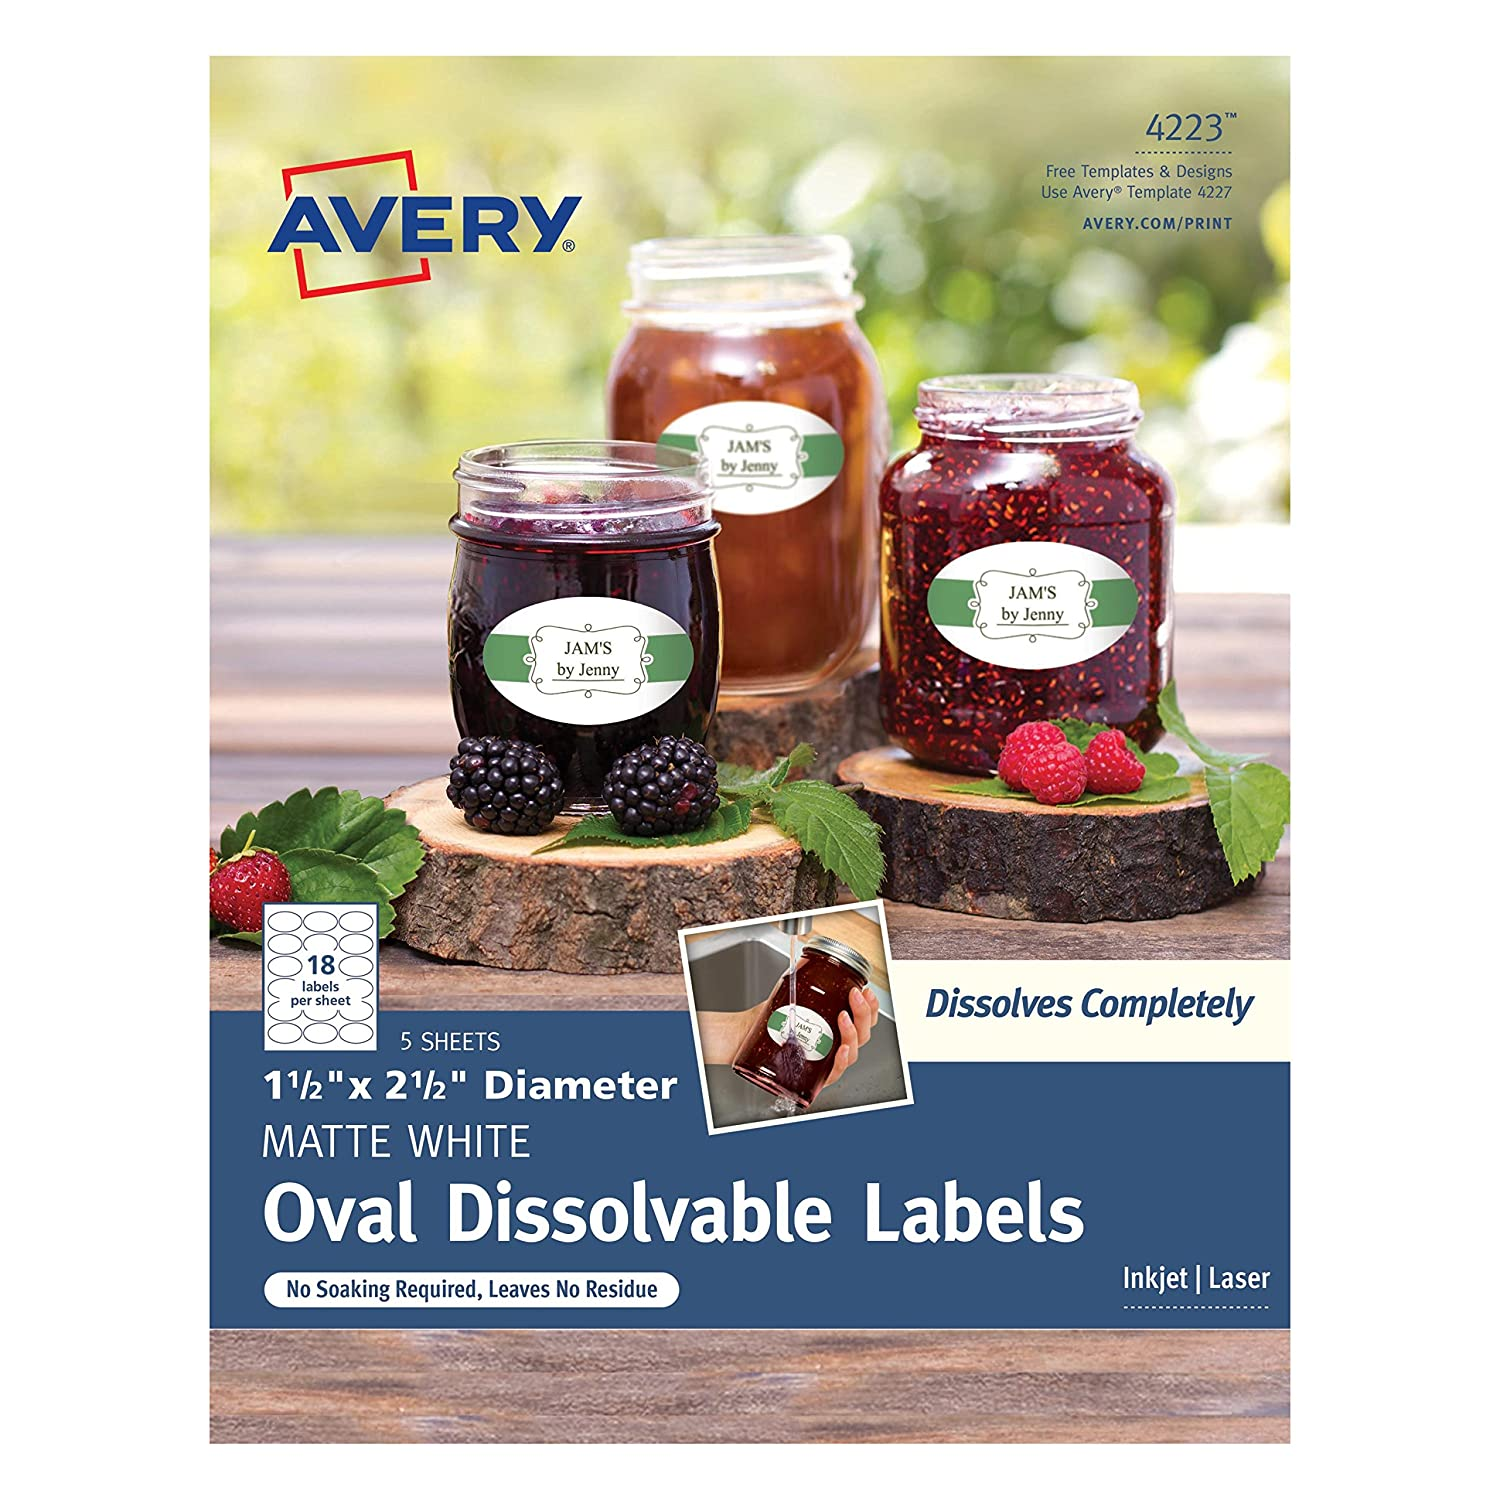 """Avery Dissolvable Oval Labels, 1-1/2"""" x 2-1/2"""", Pack of 90 (4223)"""